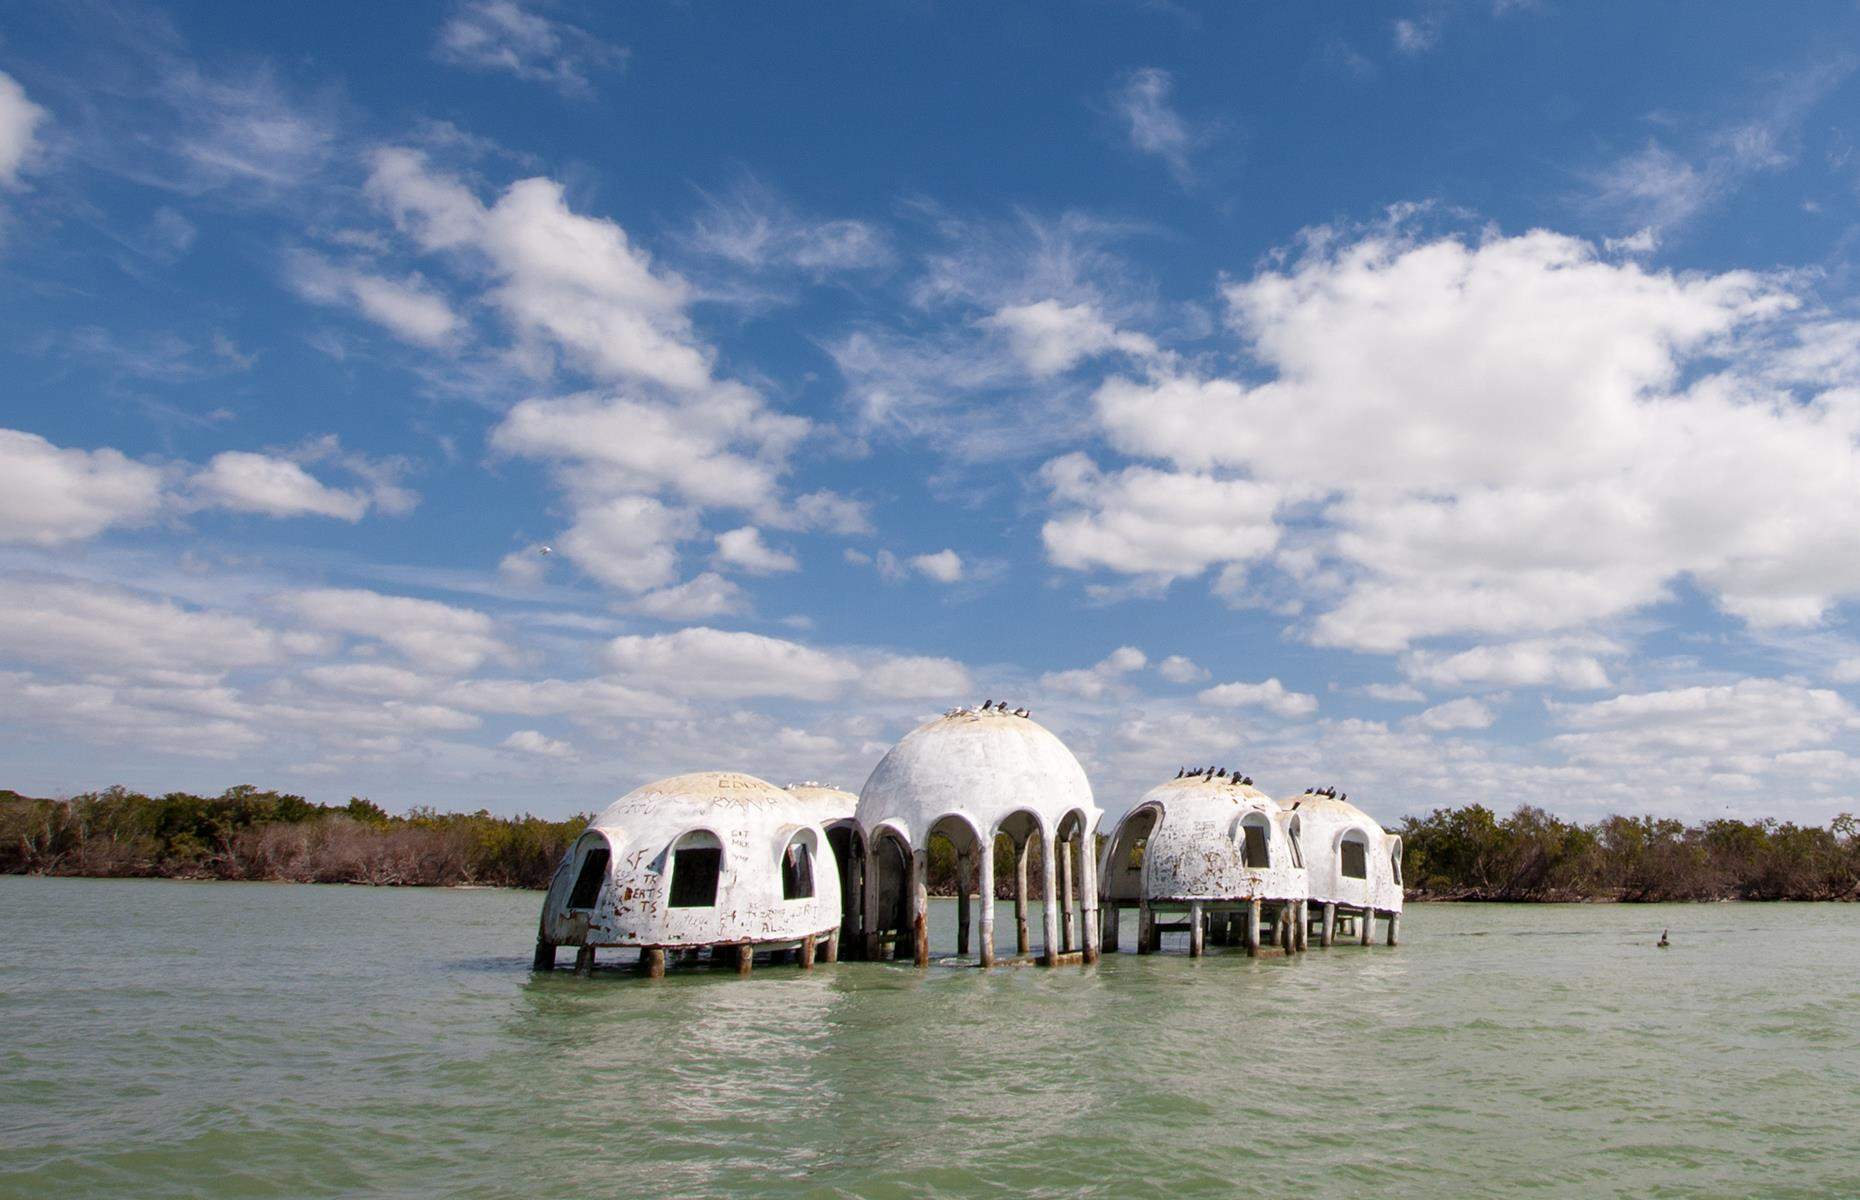 Slide 11 of 52: A futuristic string of structures, the so-called Dome House once sat on the shores of Cape Romano. The domes formed a single uber-modern house, built in the 1980s, but a series of hurricanes (including 2005's Hurricane Wilma) devastated the structure and eroded the shore. Now they lie at least 180 feet (55m) from the land and only four of the original six domes are visible above the water's surface. They're accessible by kayak, and boat trips such as those run by Dreamlander Tours also take in the spectacle – check here for current availability.